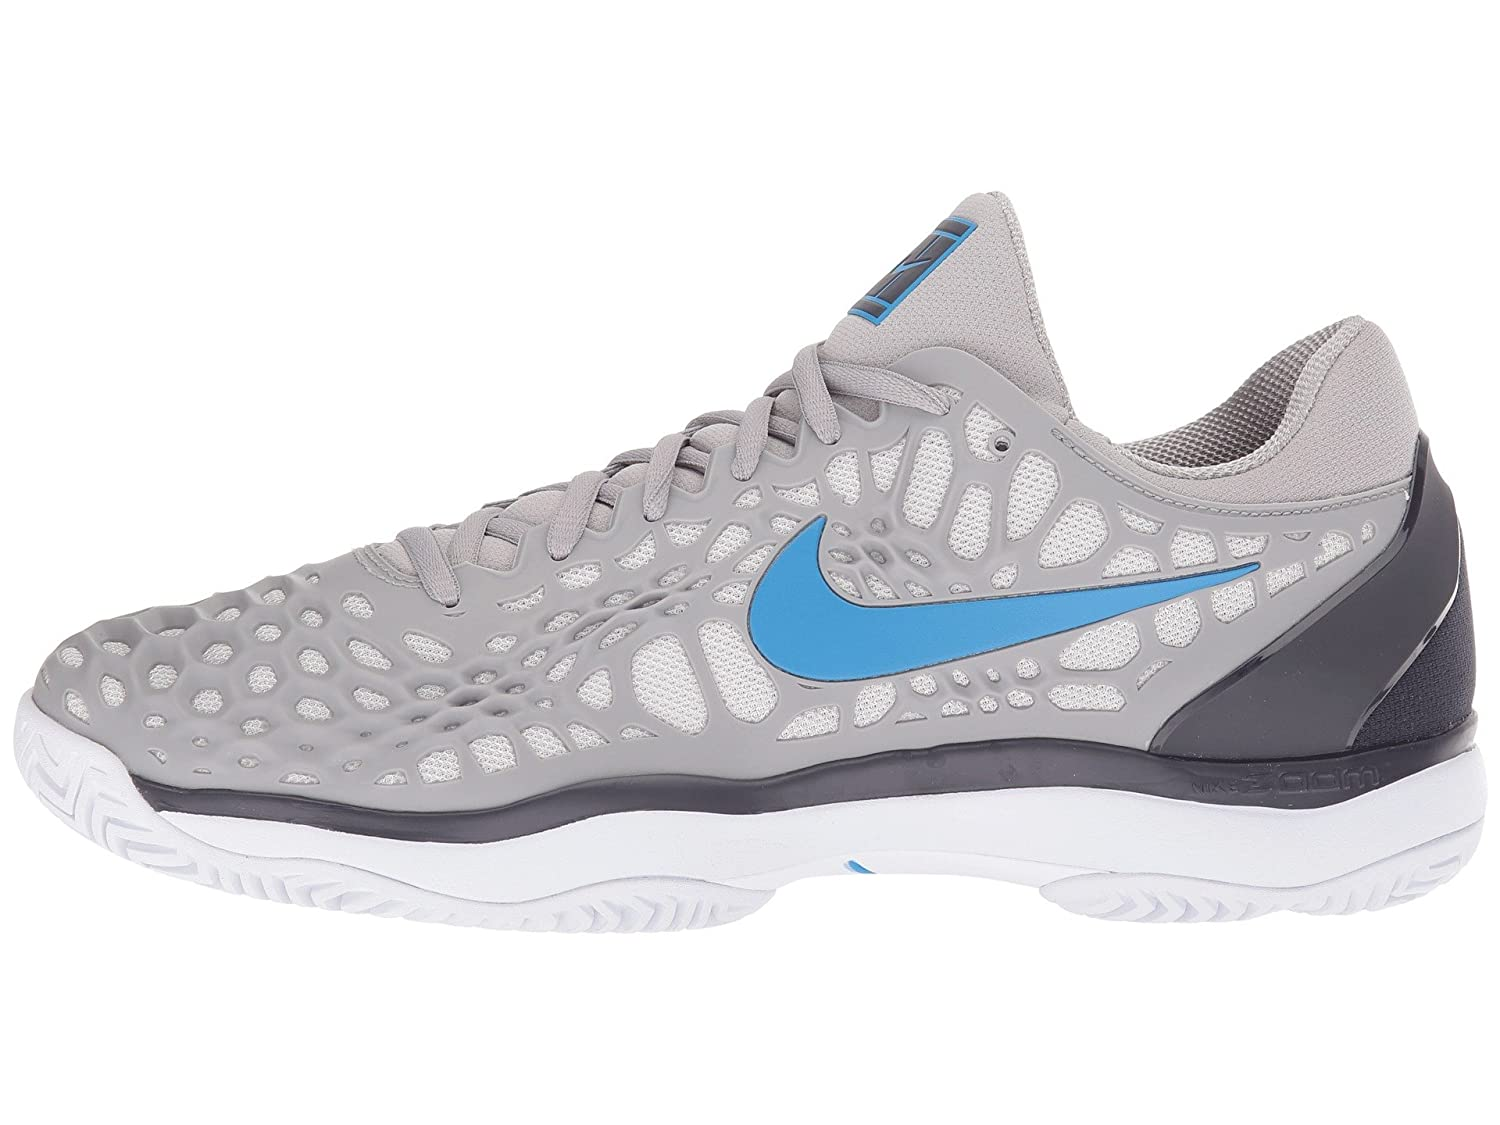 Nike Mens Zoom Cage 3 Tennis Shoes B078B1CF7Y 11.5 D(M) US|Atmosphere Grey/Photo Blue-gridiron